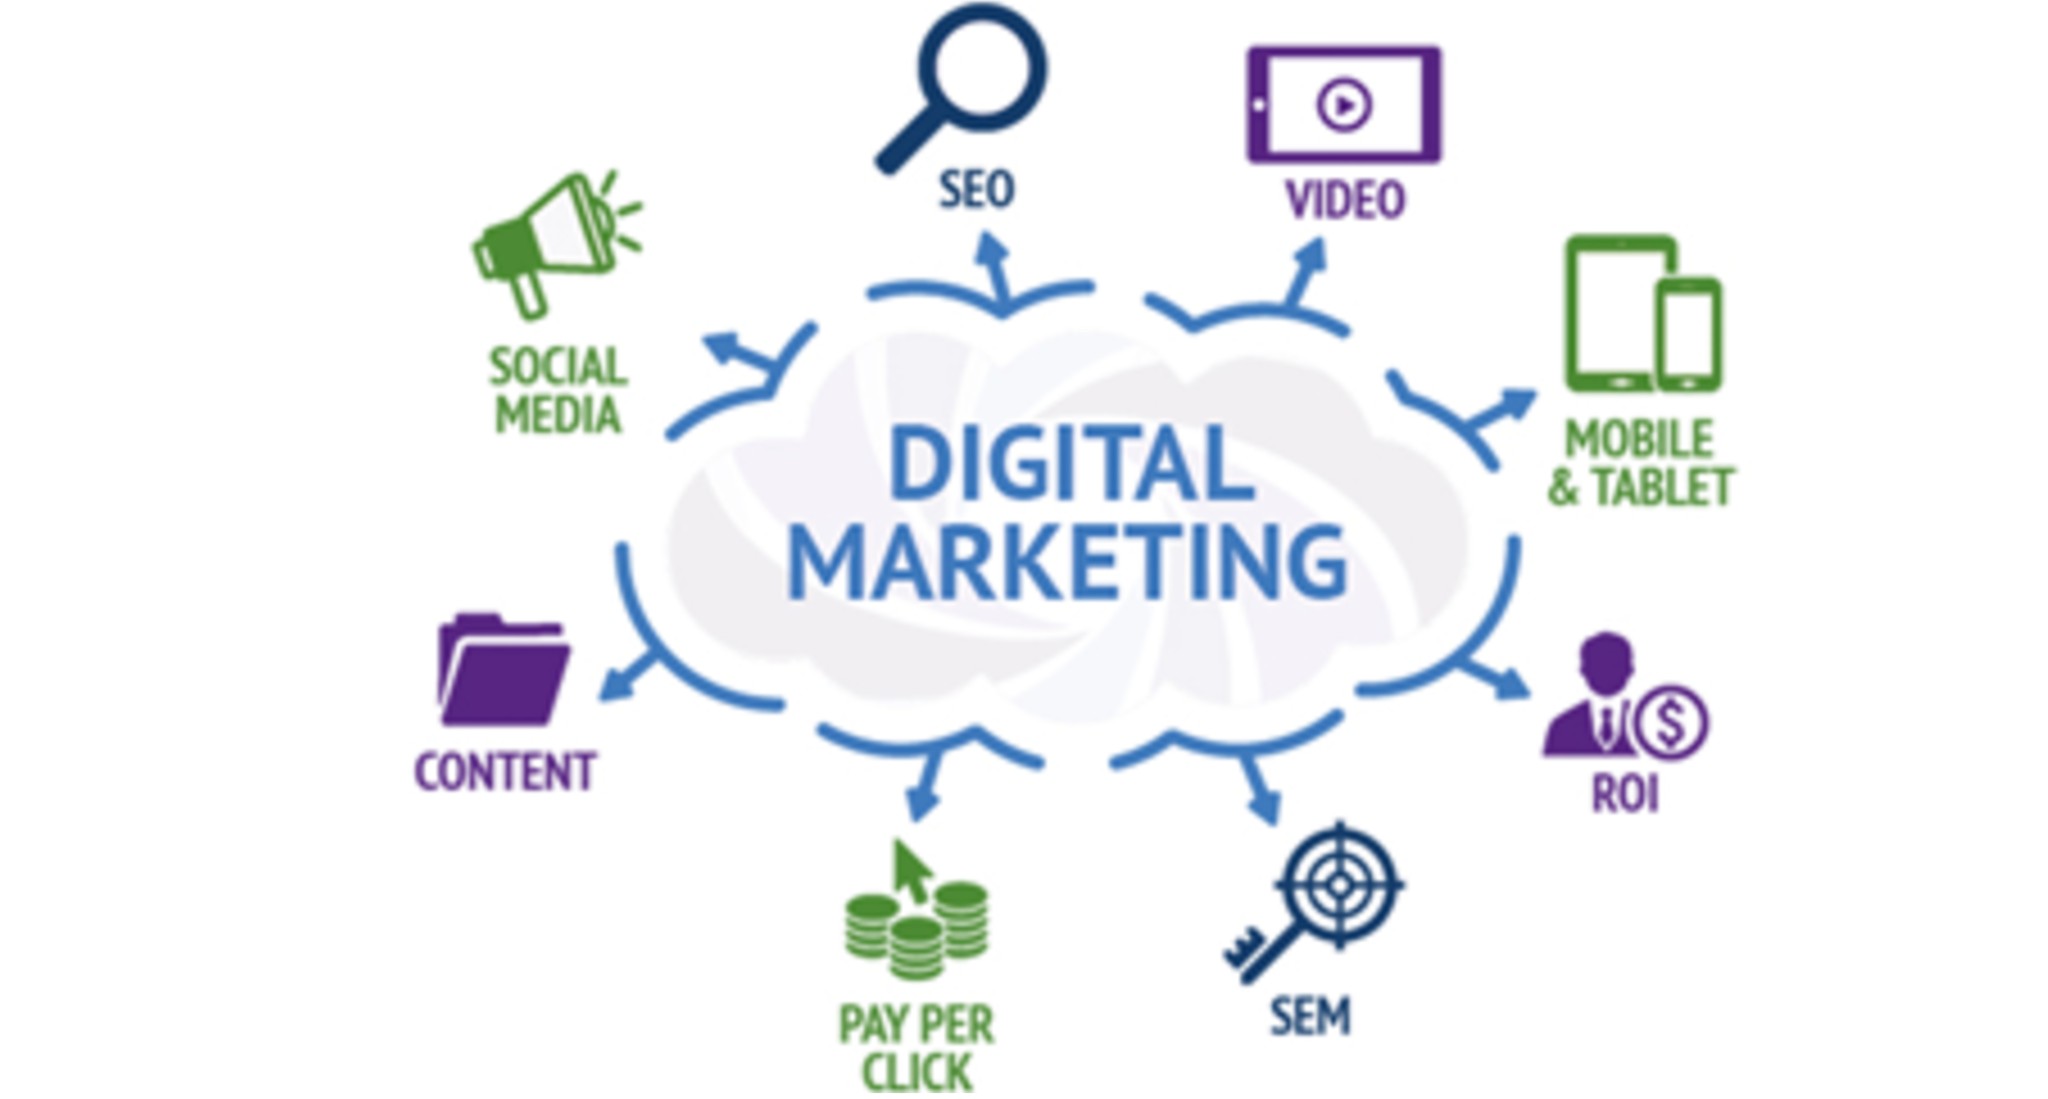 We are living in the digital era and 90 percent of people spend their time on the internet. Digital marketing has amplified the businesses and brand traffic, qualified leads, sales, ROI as well as a strong online identity. In digital marketing, digital technologies are utilized in the marketing of products and services. We offer the Affordable Digital Marketing Services. Our highly skilled and trained digital marketing specialists use the dynamic approach, latest, and demonstrated skills to provide your excellent results. TECH GURU IT SOLUTIONS. is the Digital Marketing Company in Noida.